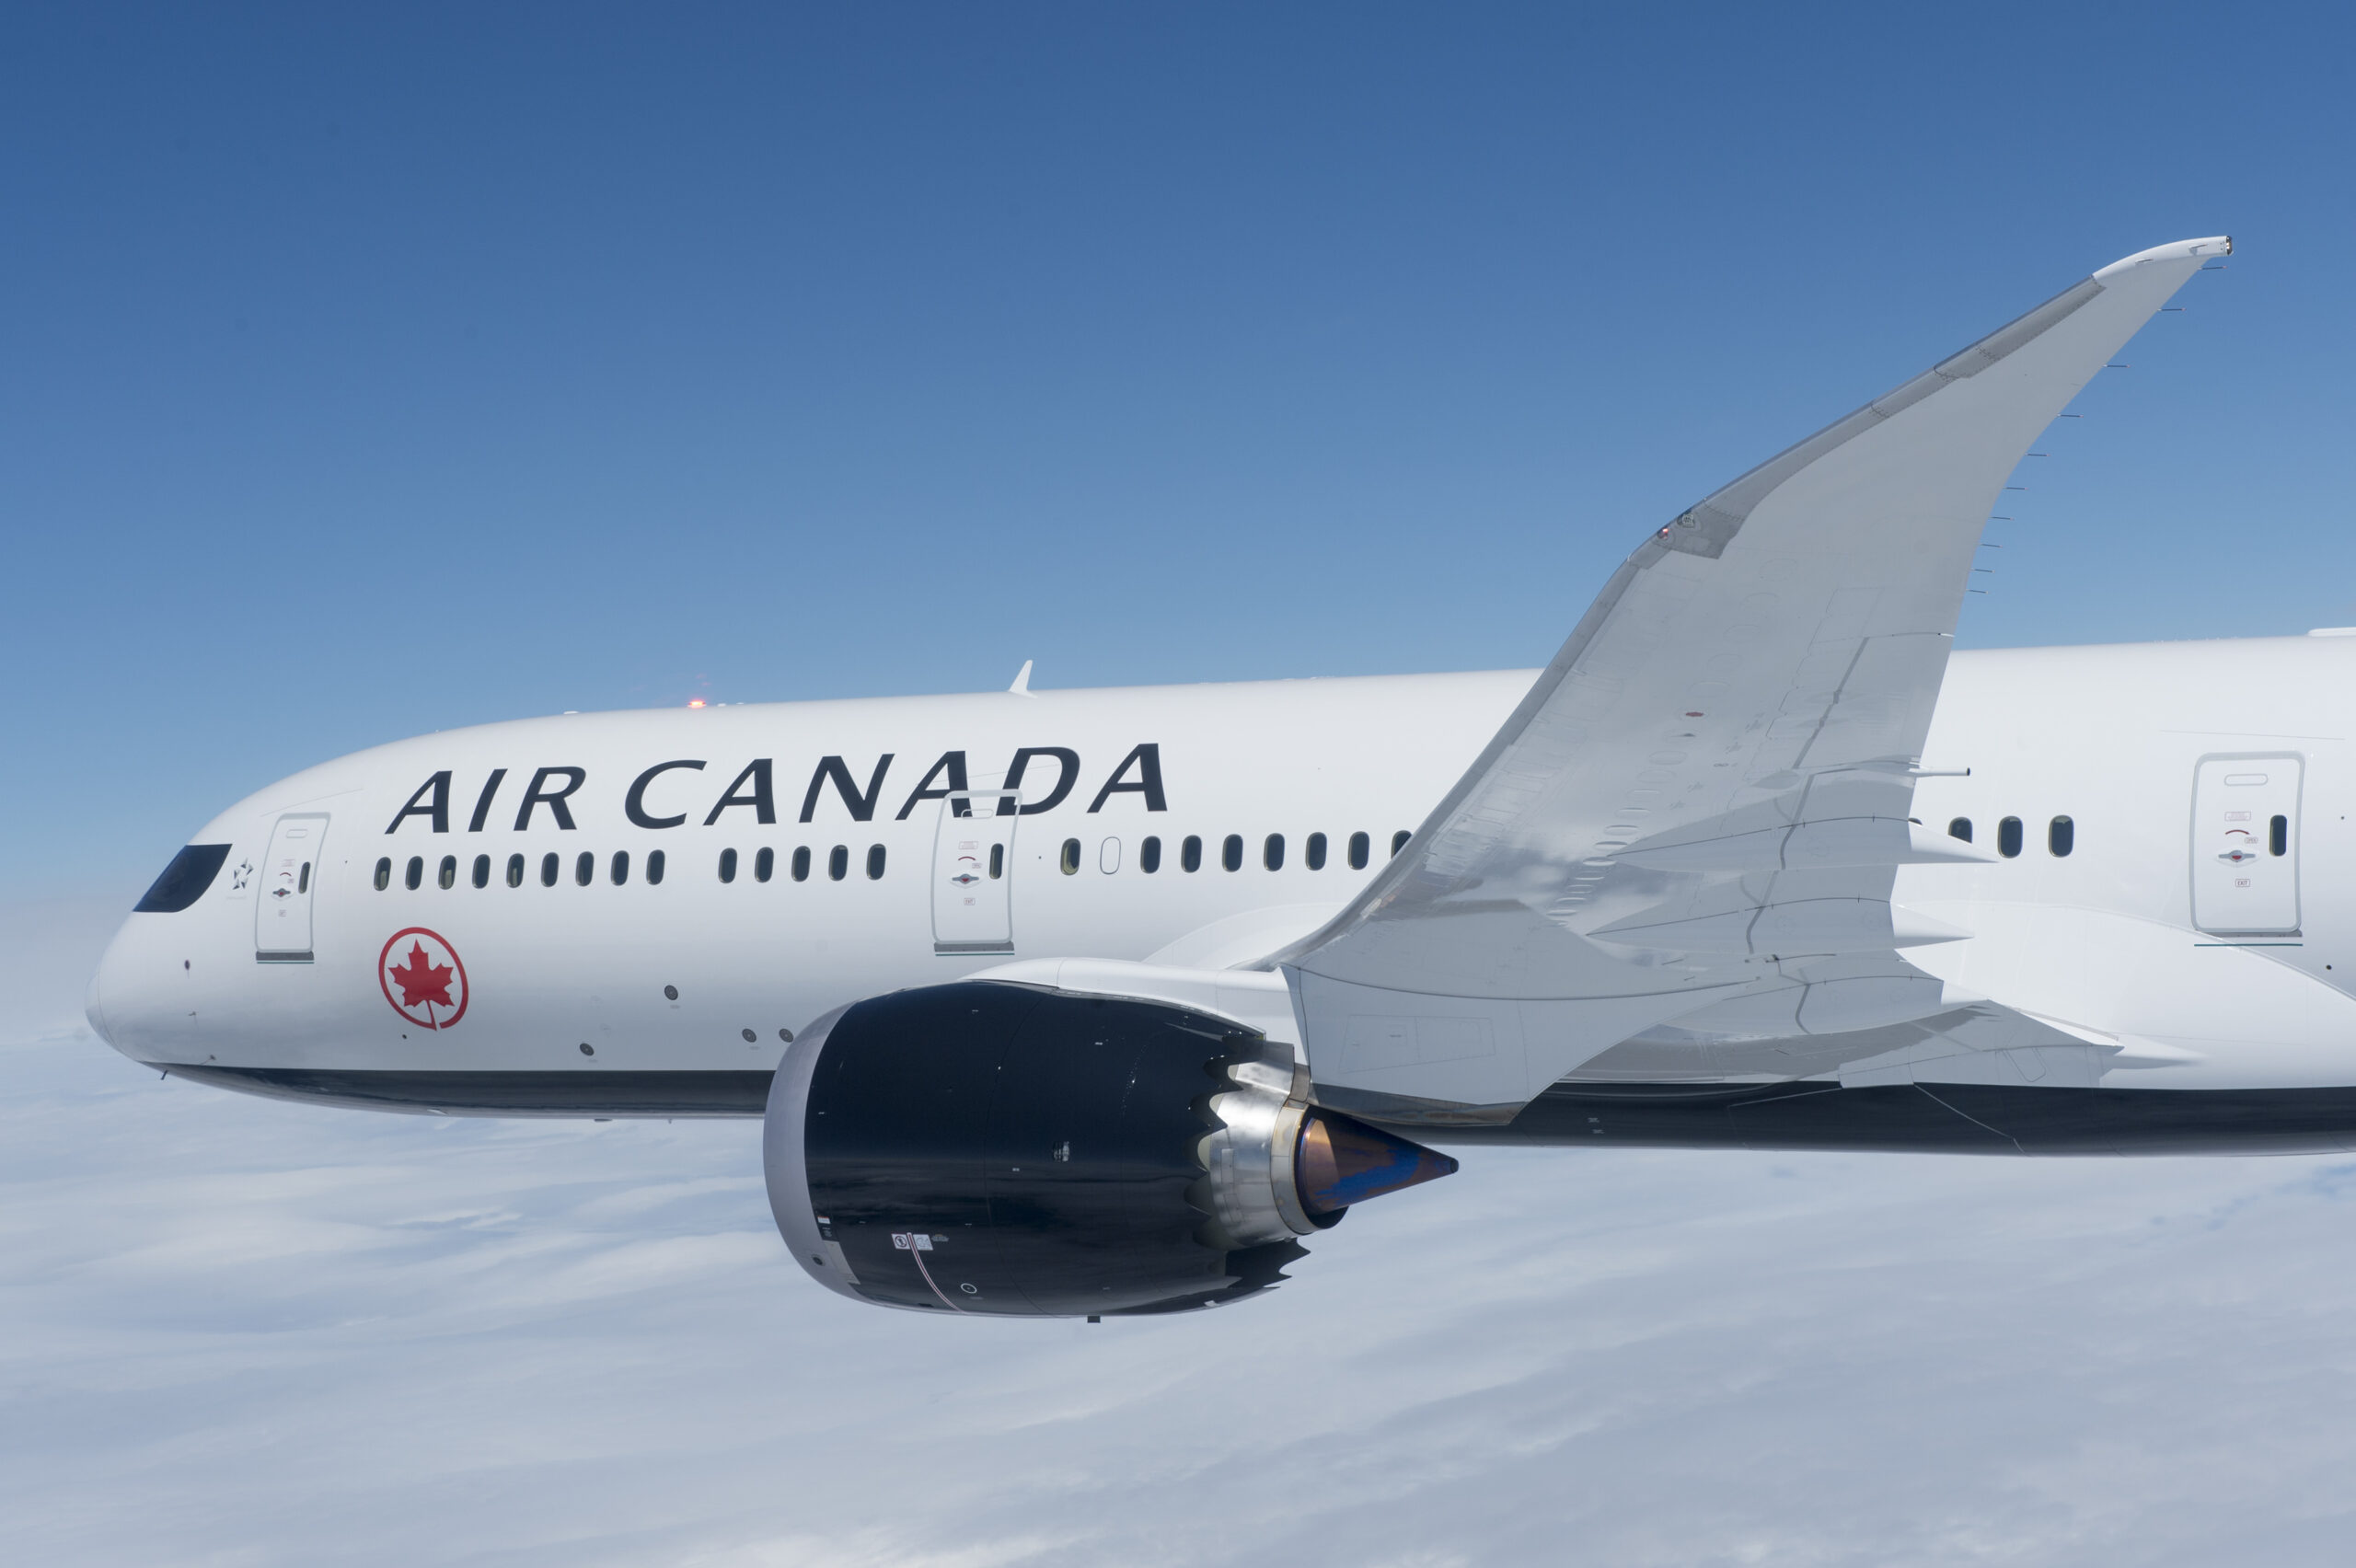 Air Canada will again fly to Chile and Brazil and increase its flights in Colombia